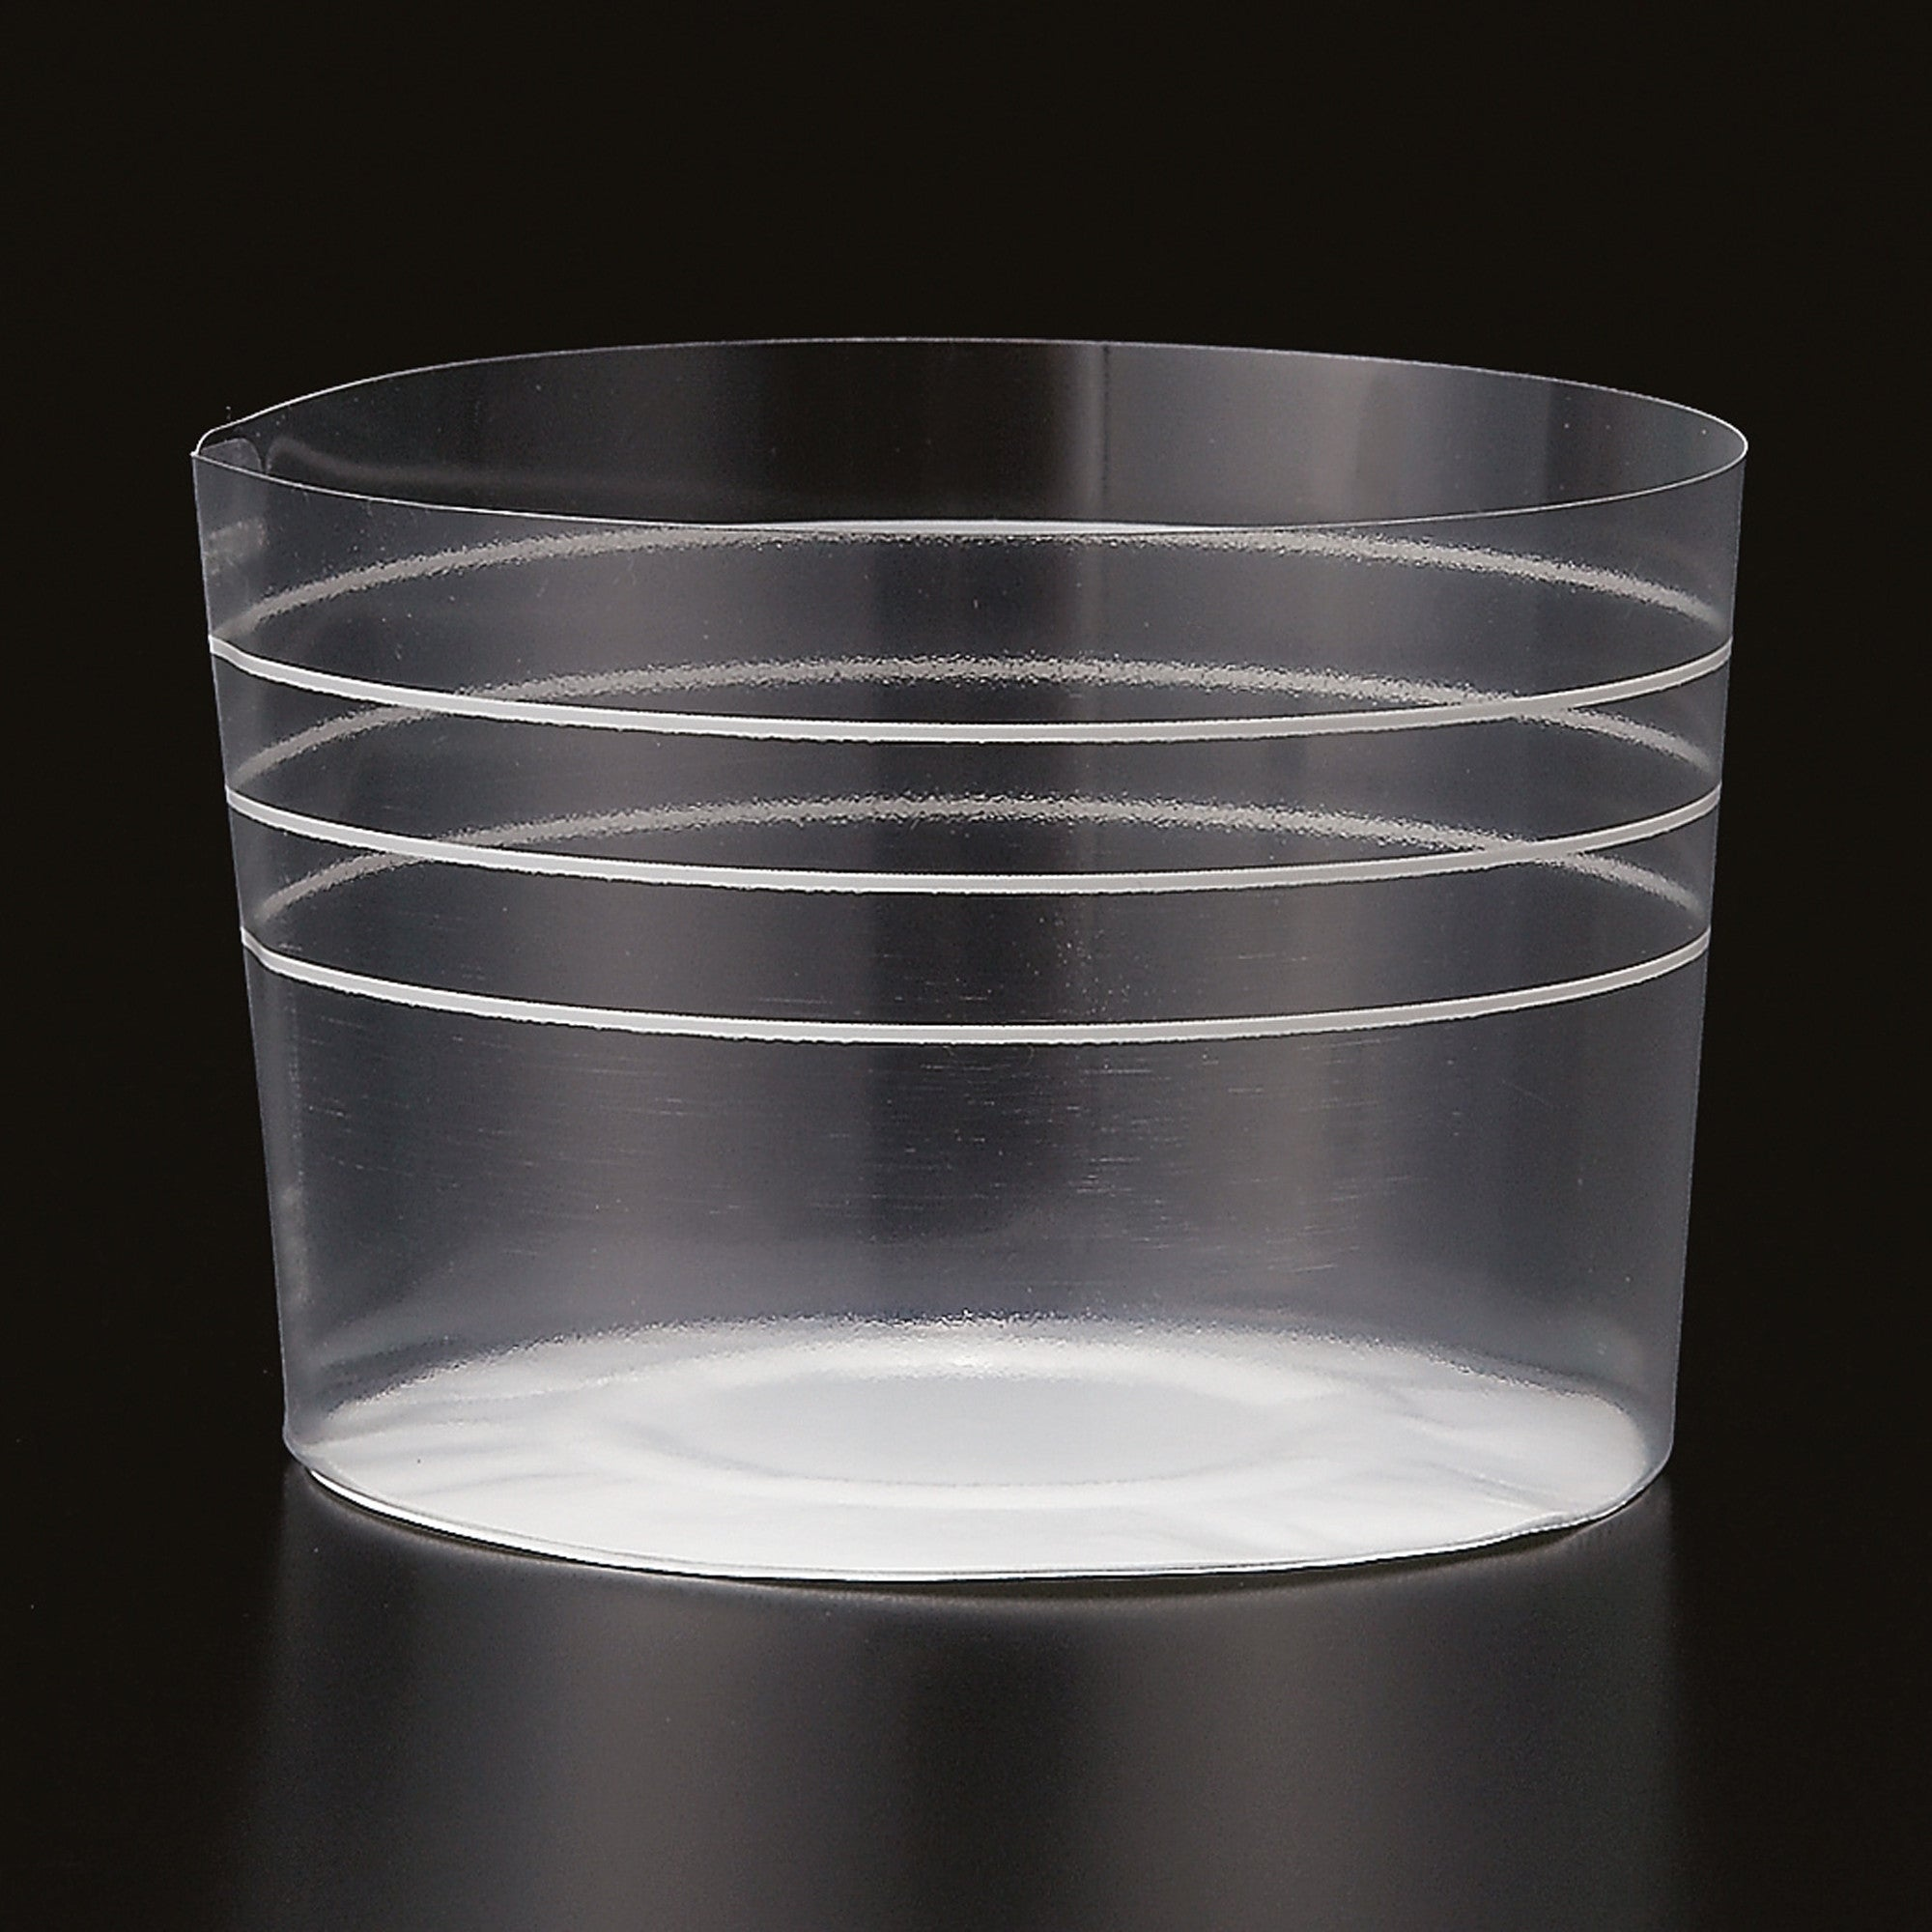 Plastic Baking Cups, CK803 - Welcome Home Brands